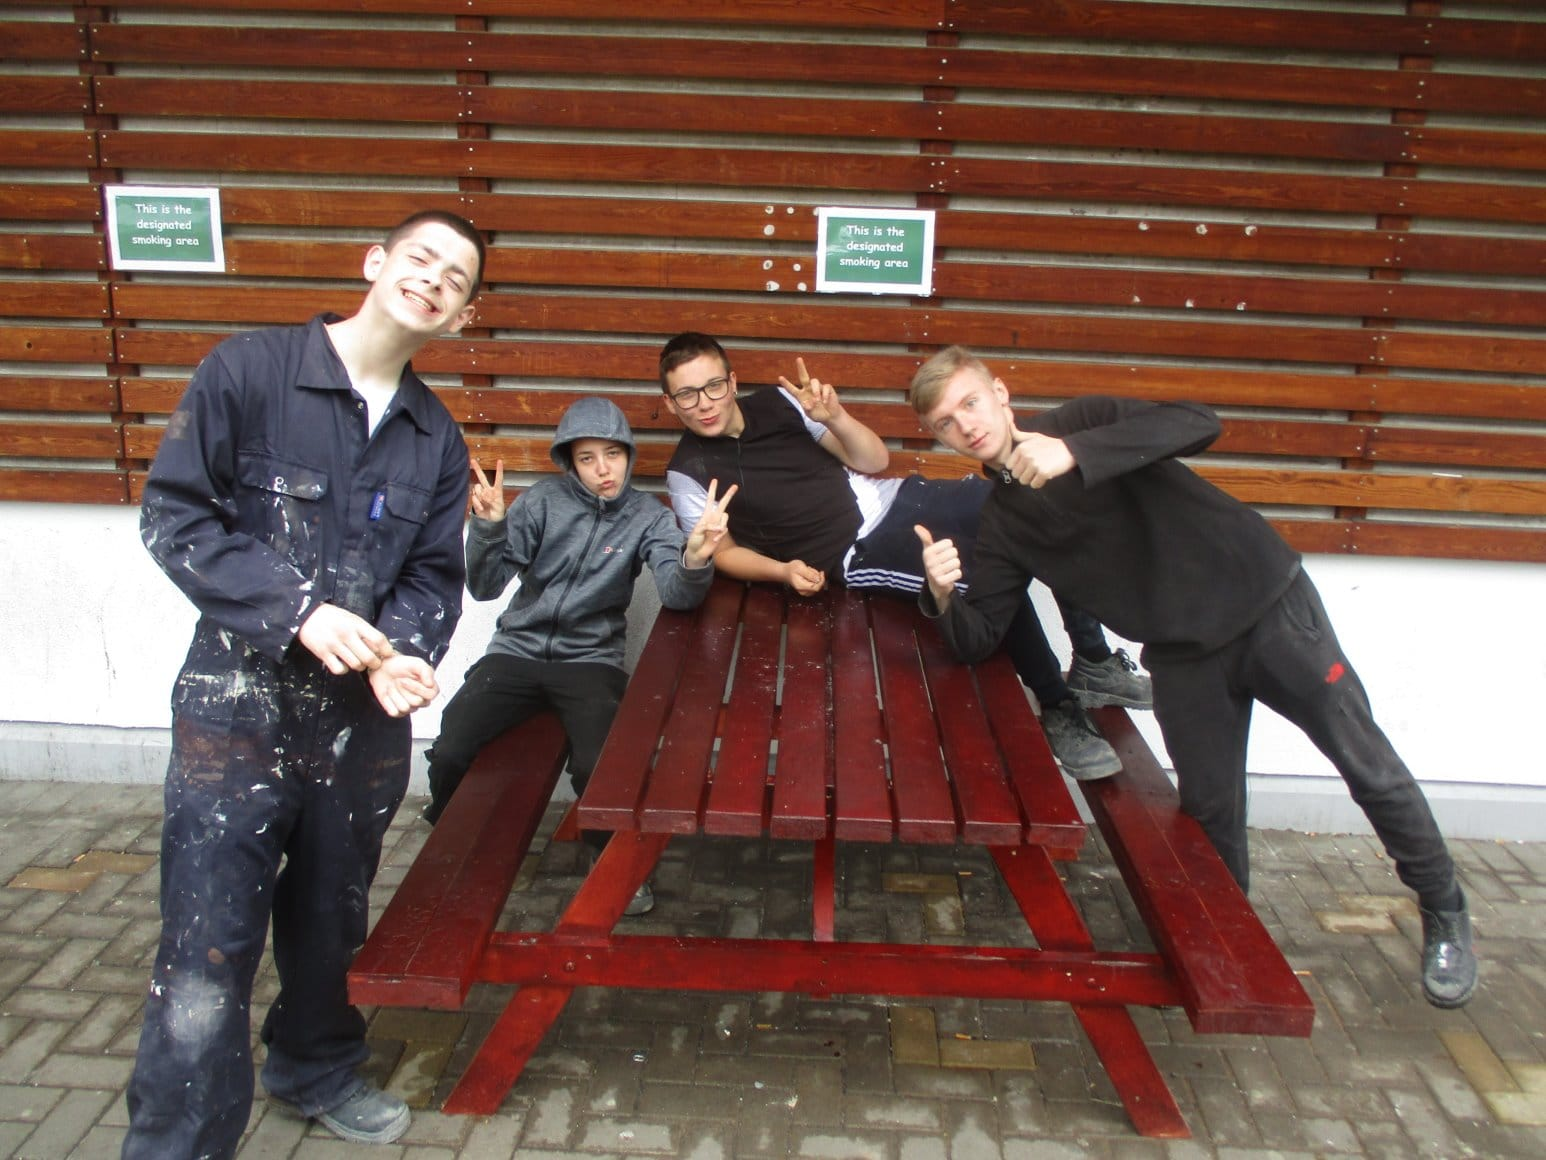 EVIP Construction group with one of the benches